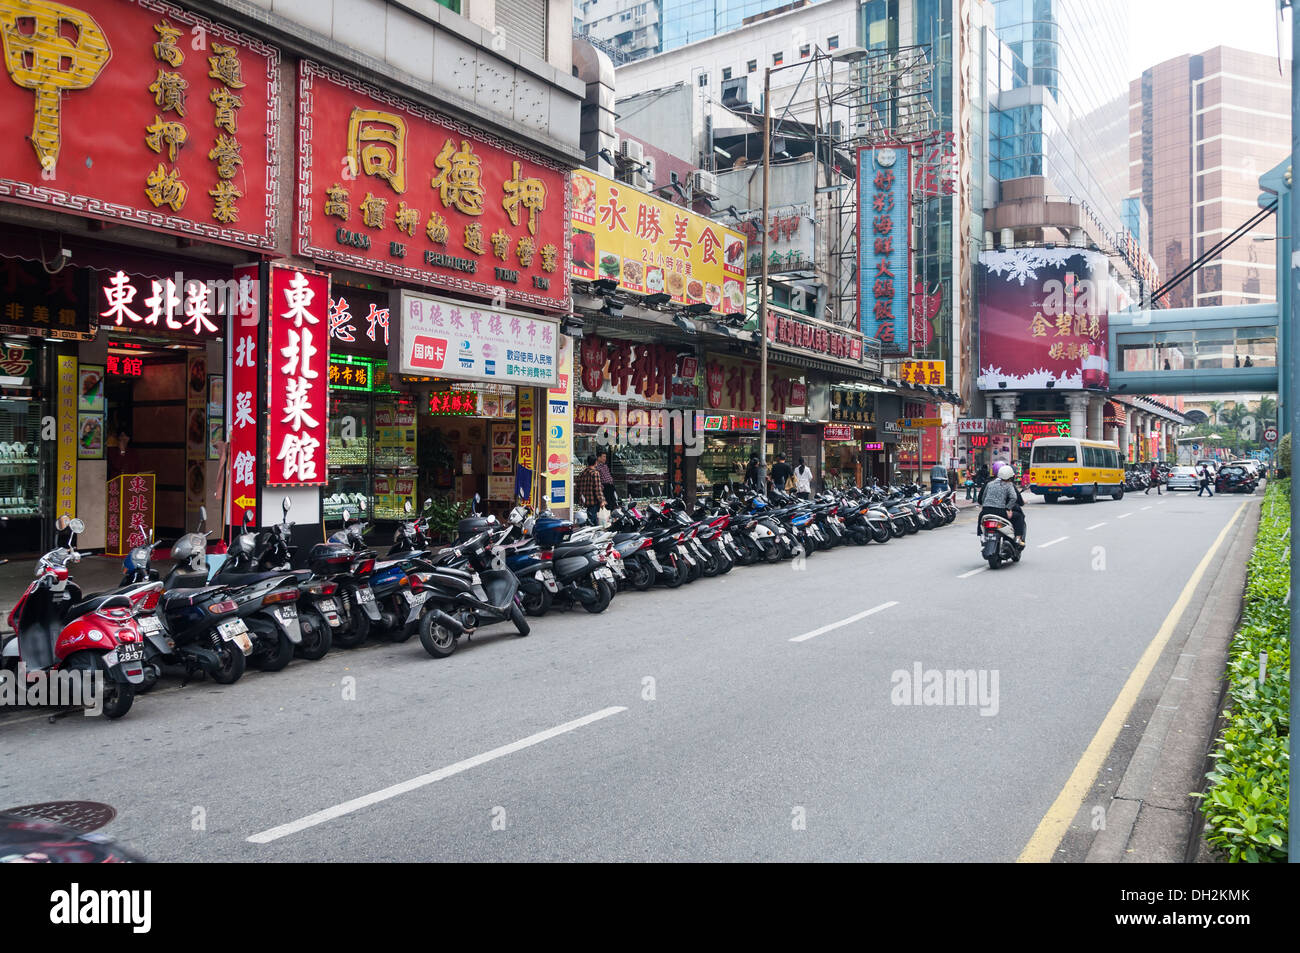 A long row of scooters on a street in Macau. - Stock Image